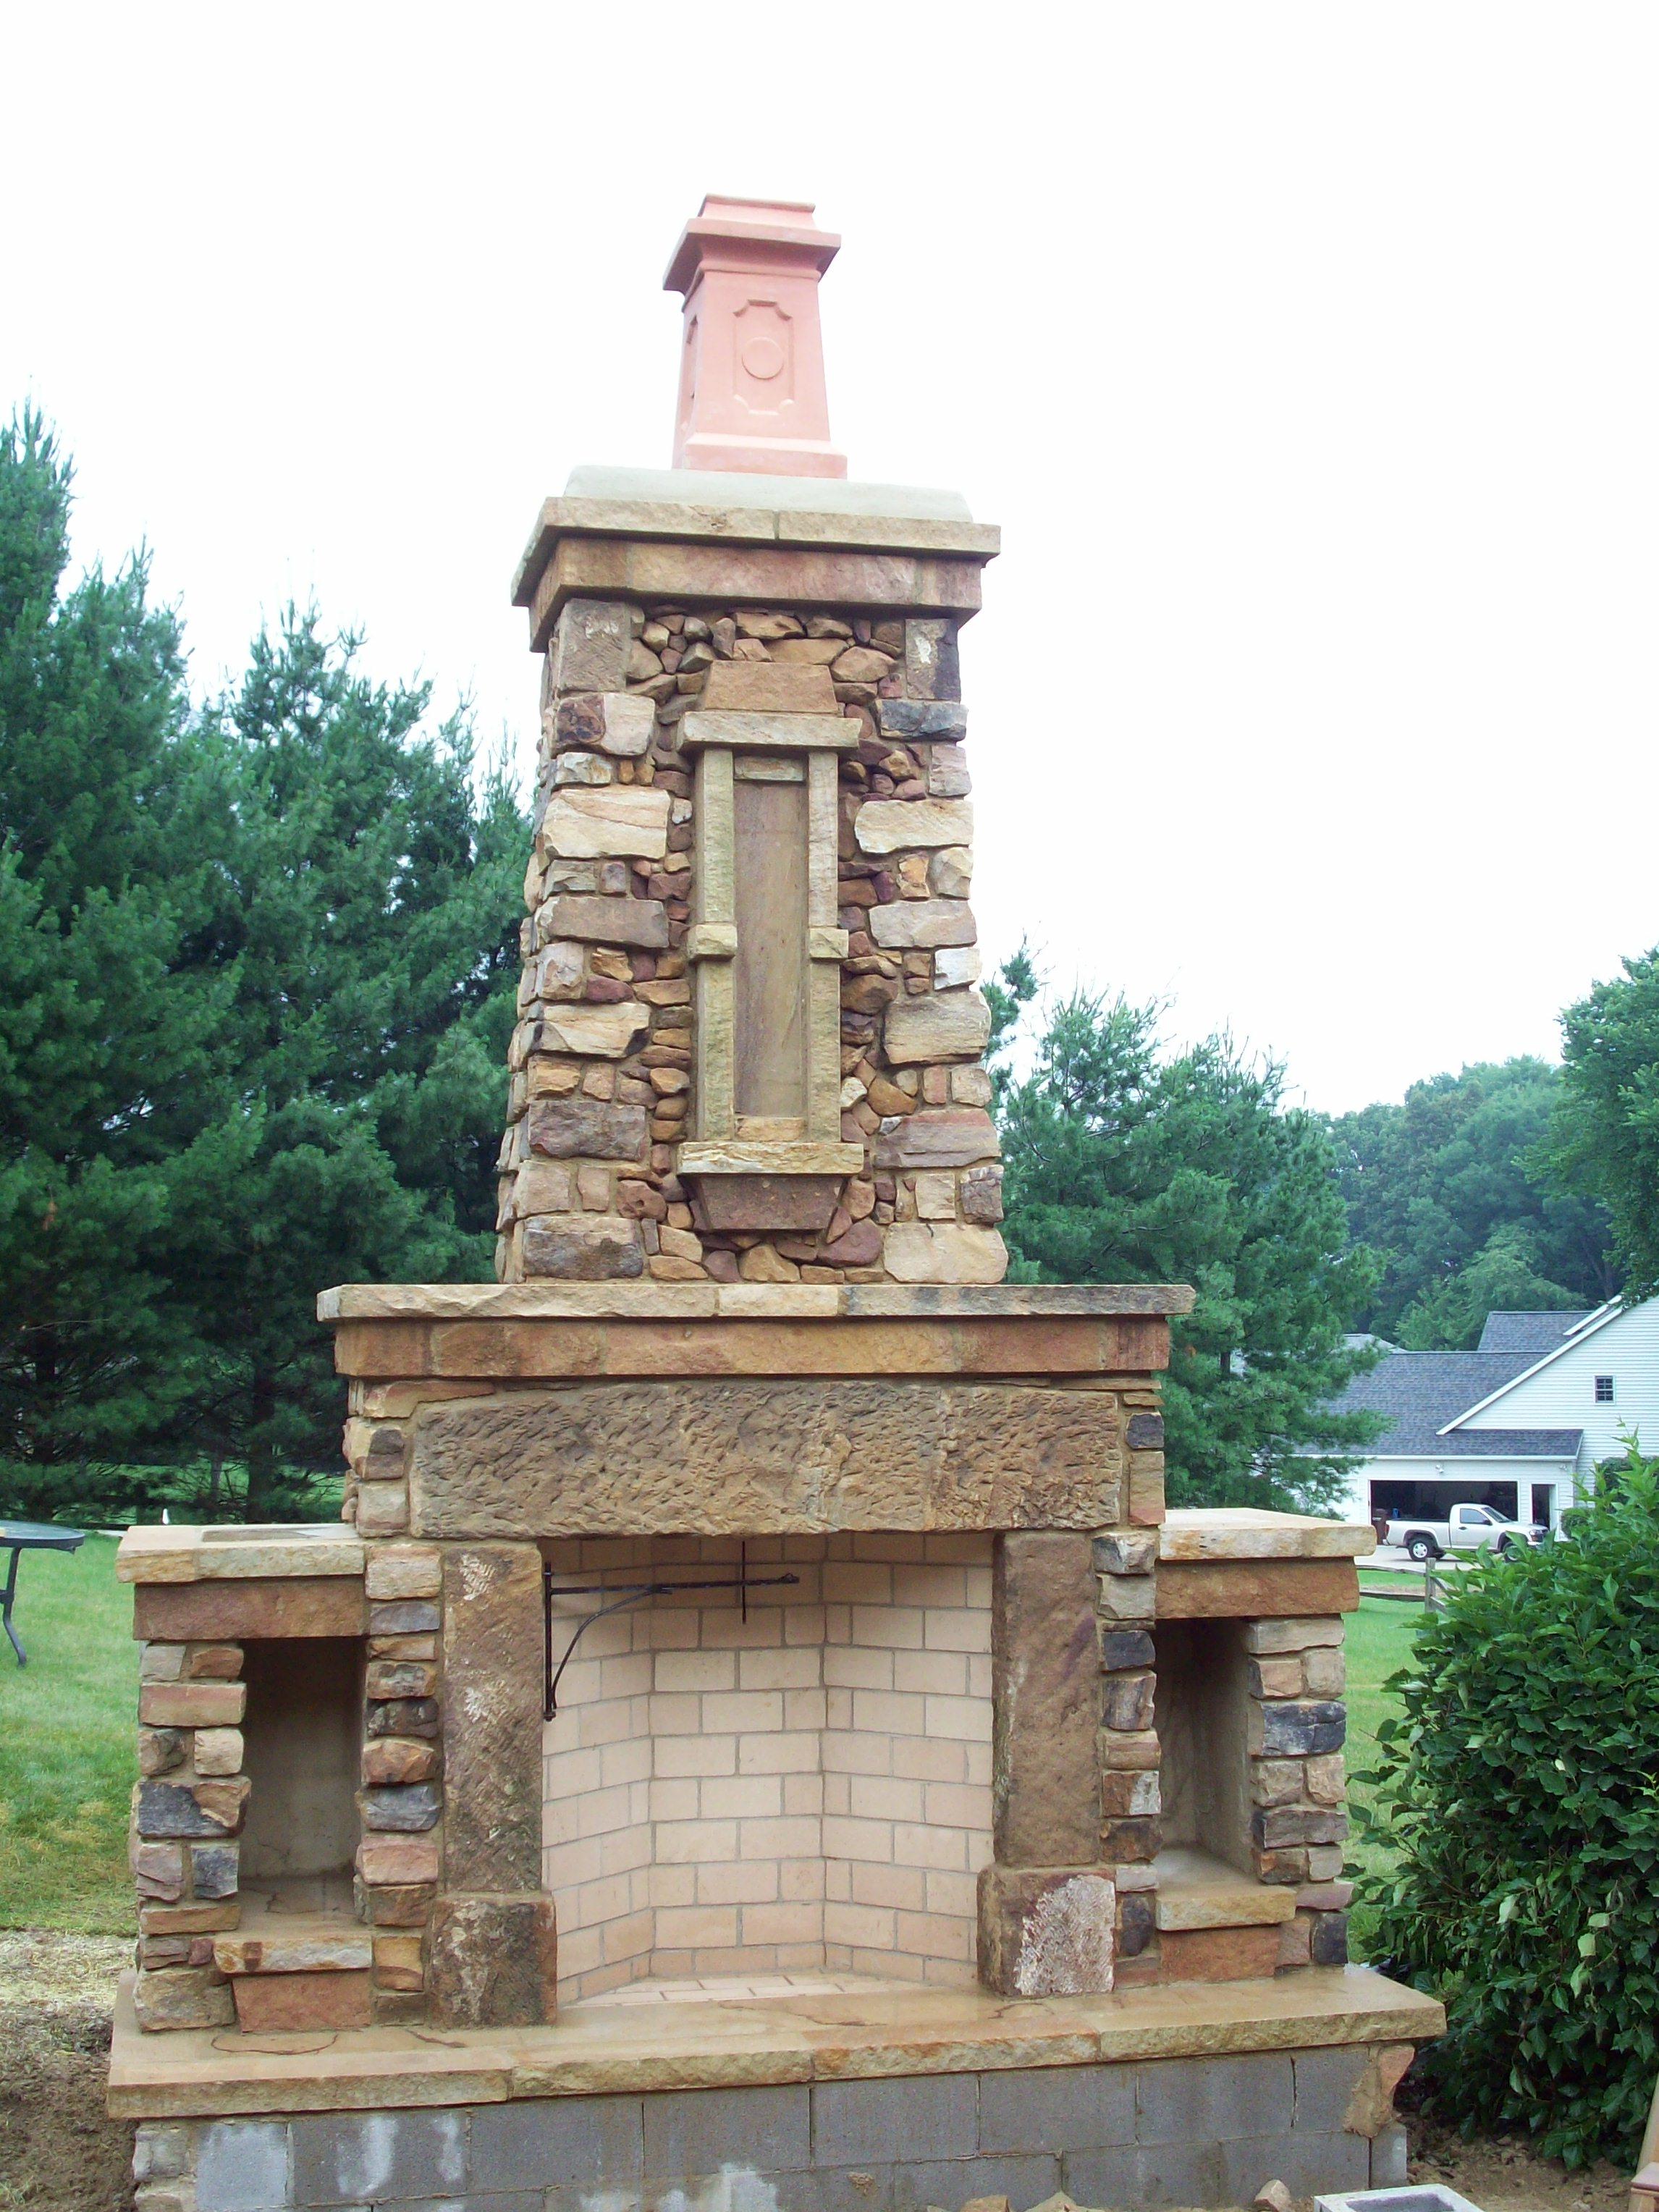 natural stone Rumford Fireplace with chimney for outdoor heat arming ideas